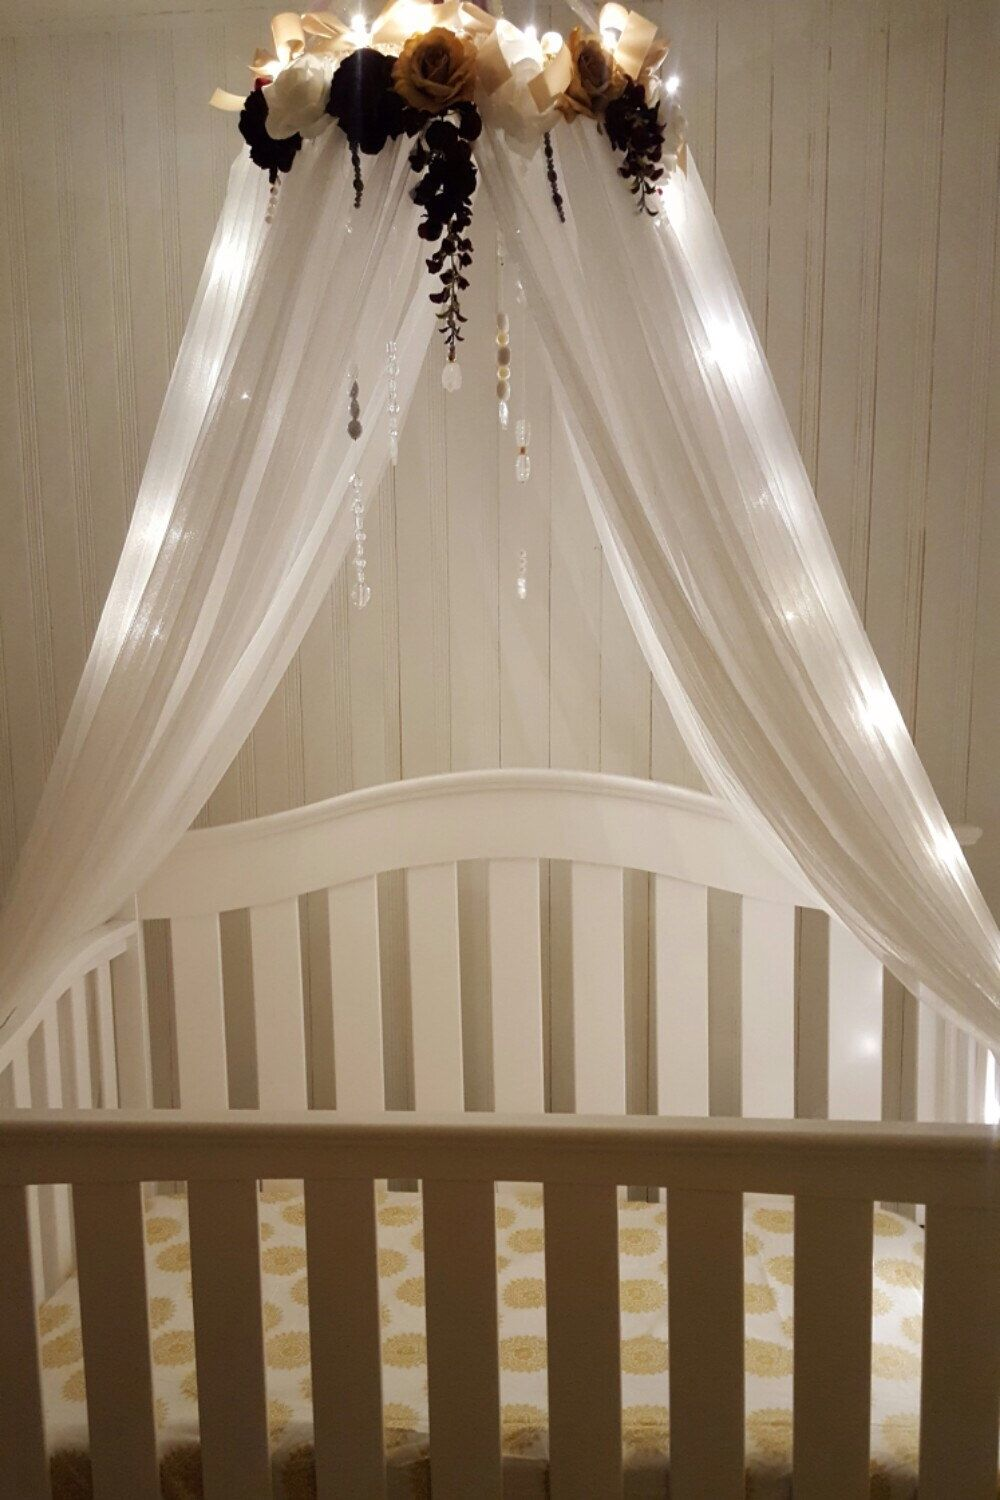 Ivory Ch&agne u0026 Plum Canopy- Nursery Crib Canopy- Bed Canopy- Crib Canopy- Flower Canopy- Lighted Canopy- Baby girl : canopy for baby cot - memphite.com